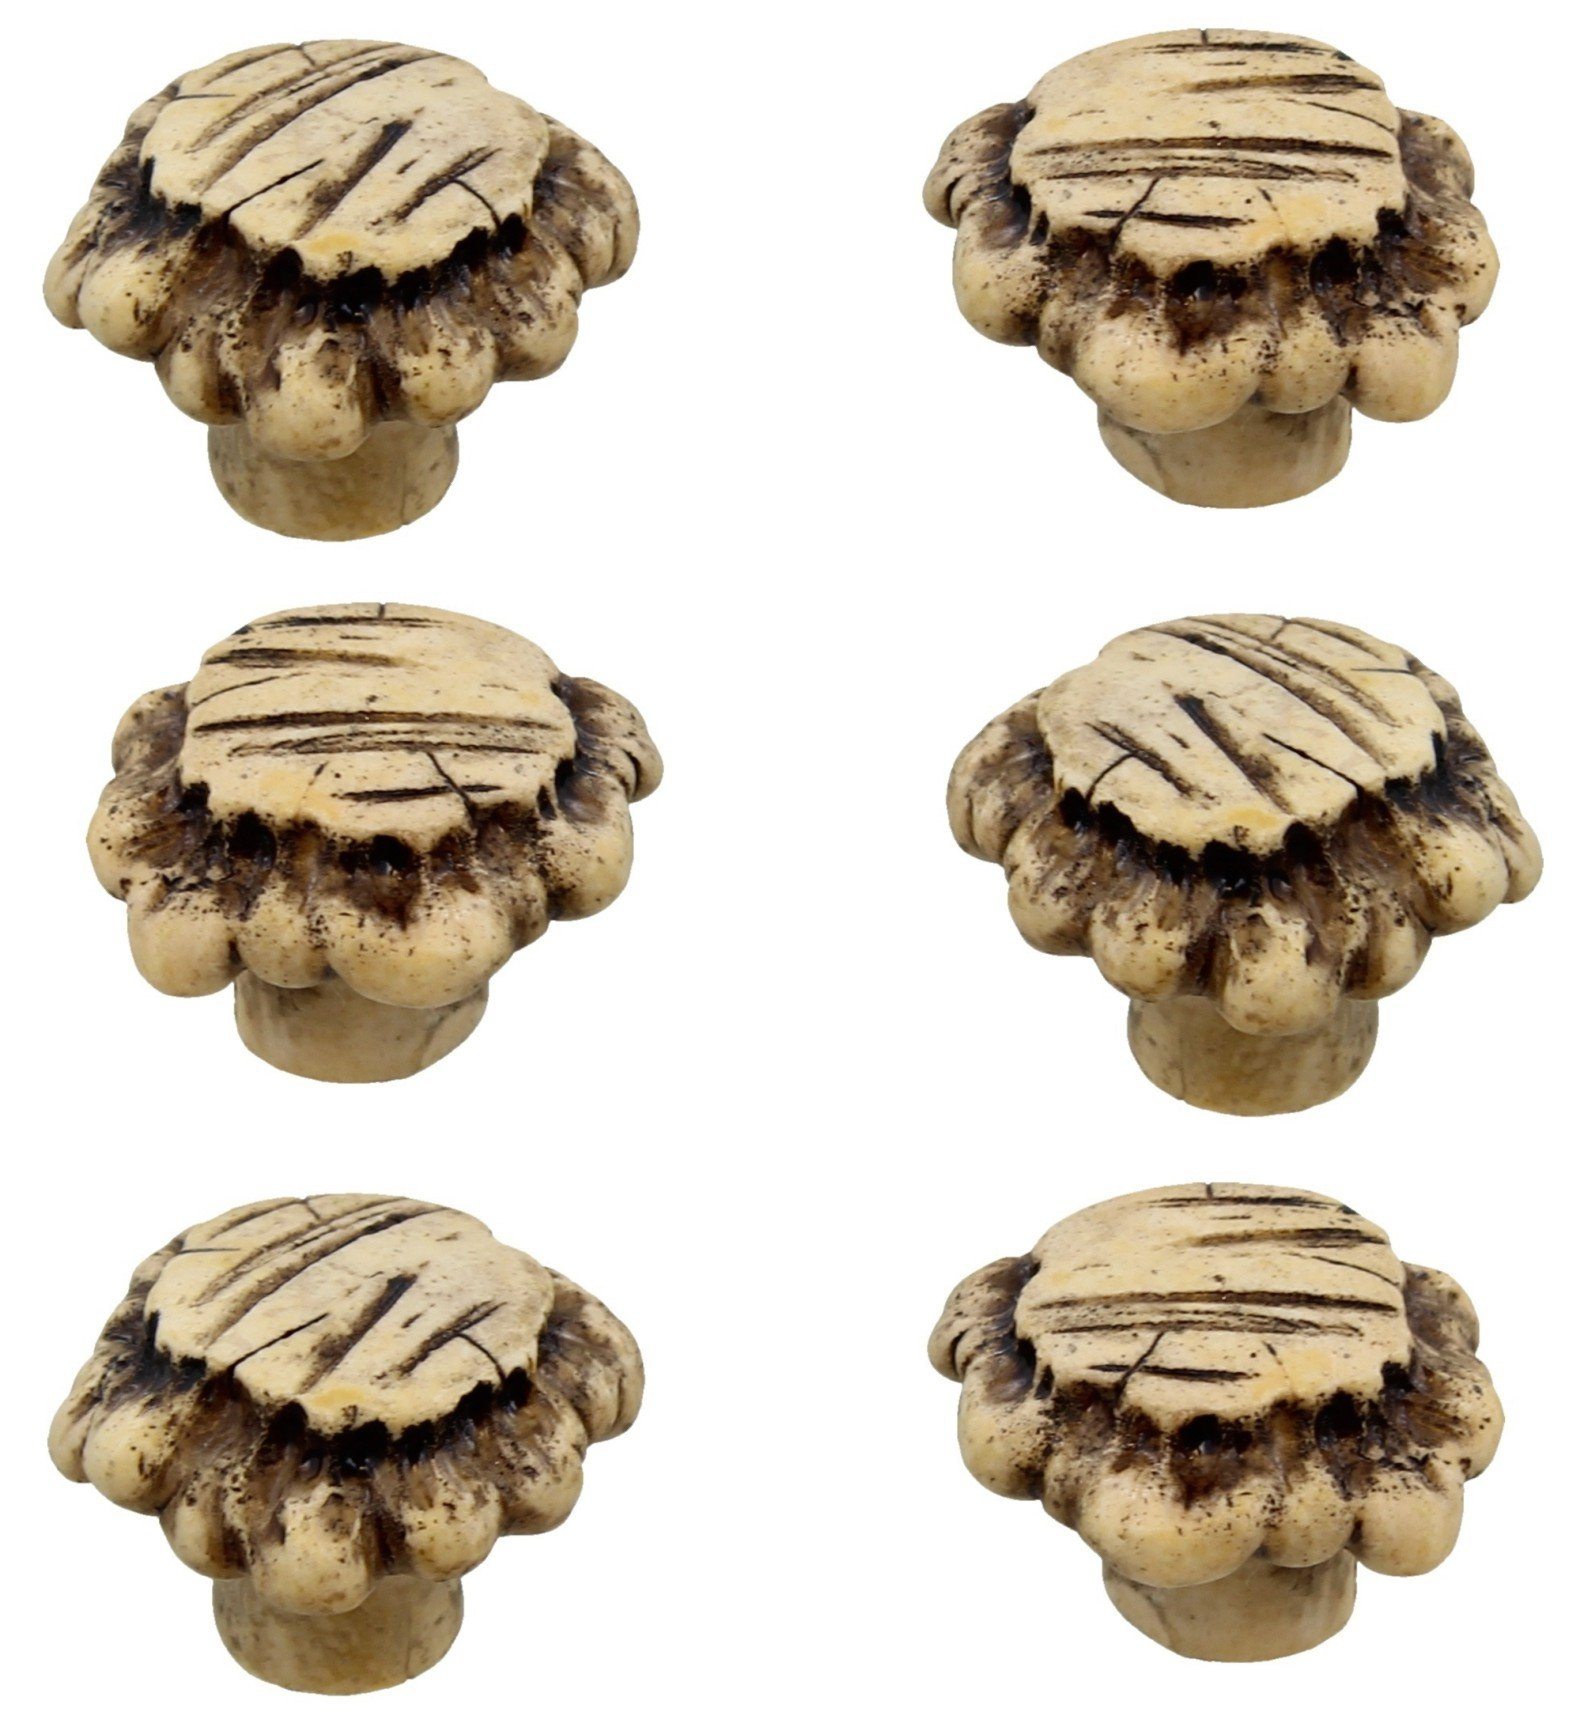 Rainbow Brand Heavy Duty Antler Drawer / Cabinet Pull Knob (6 Pack) by Colors of Rainbow